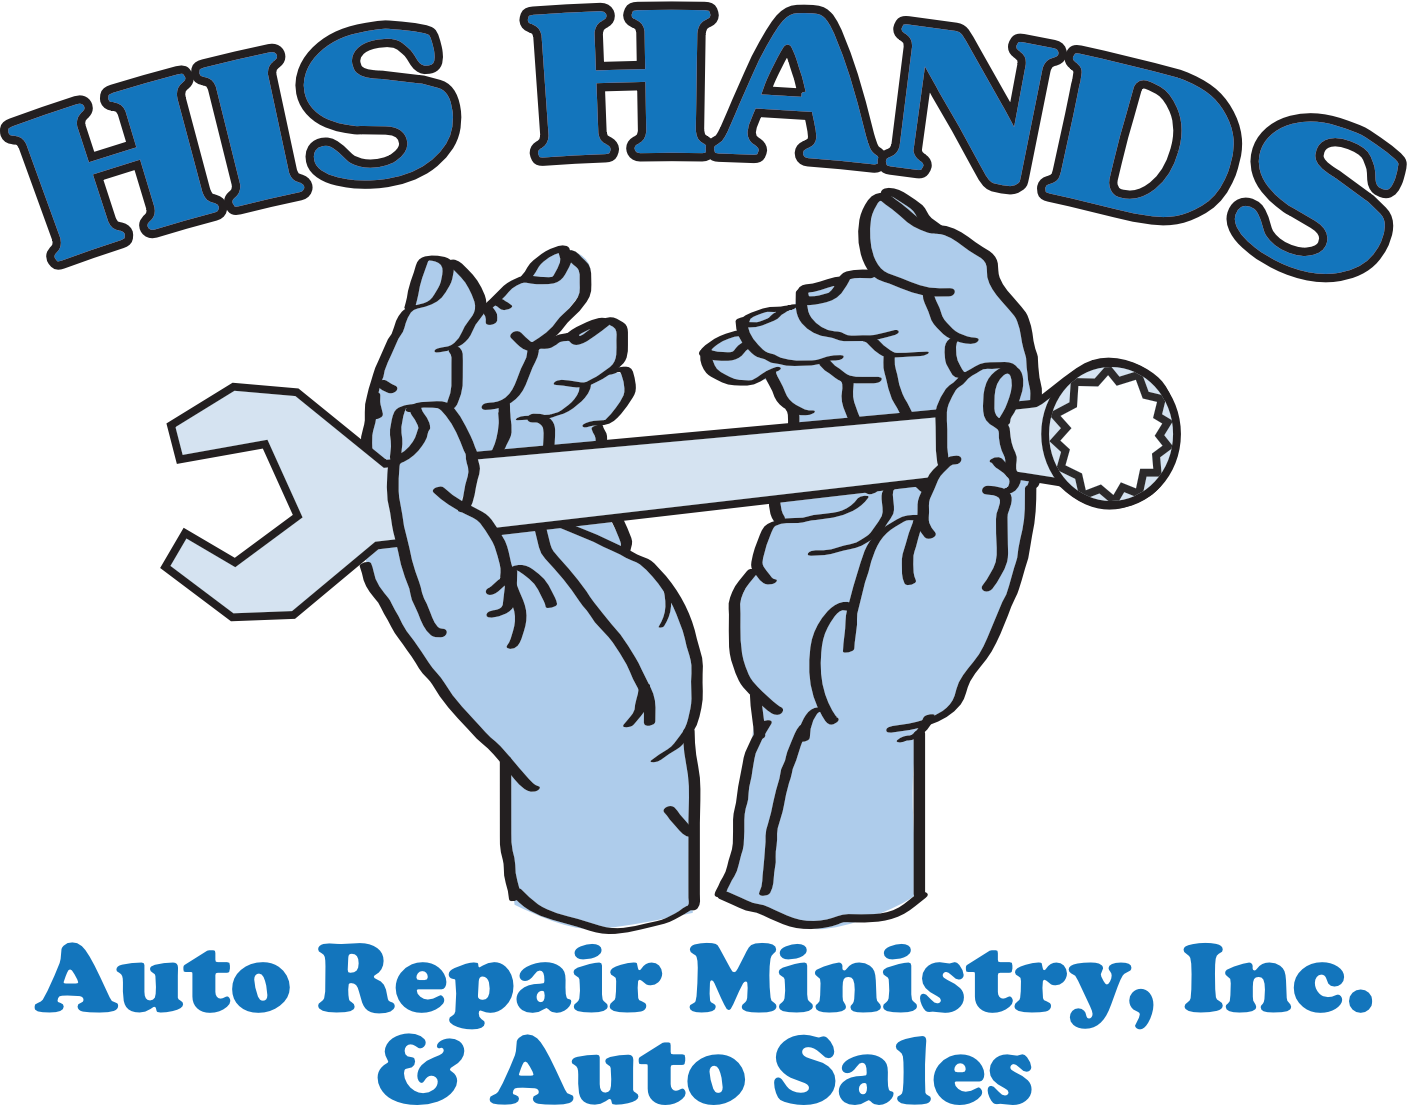 His Hands Auto Repair and Auto Sales